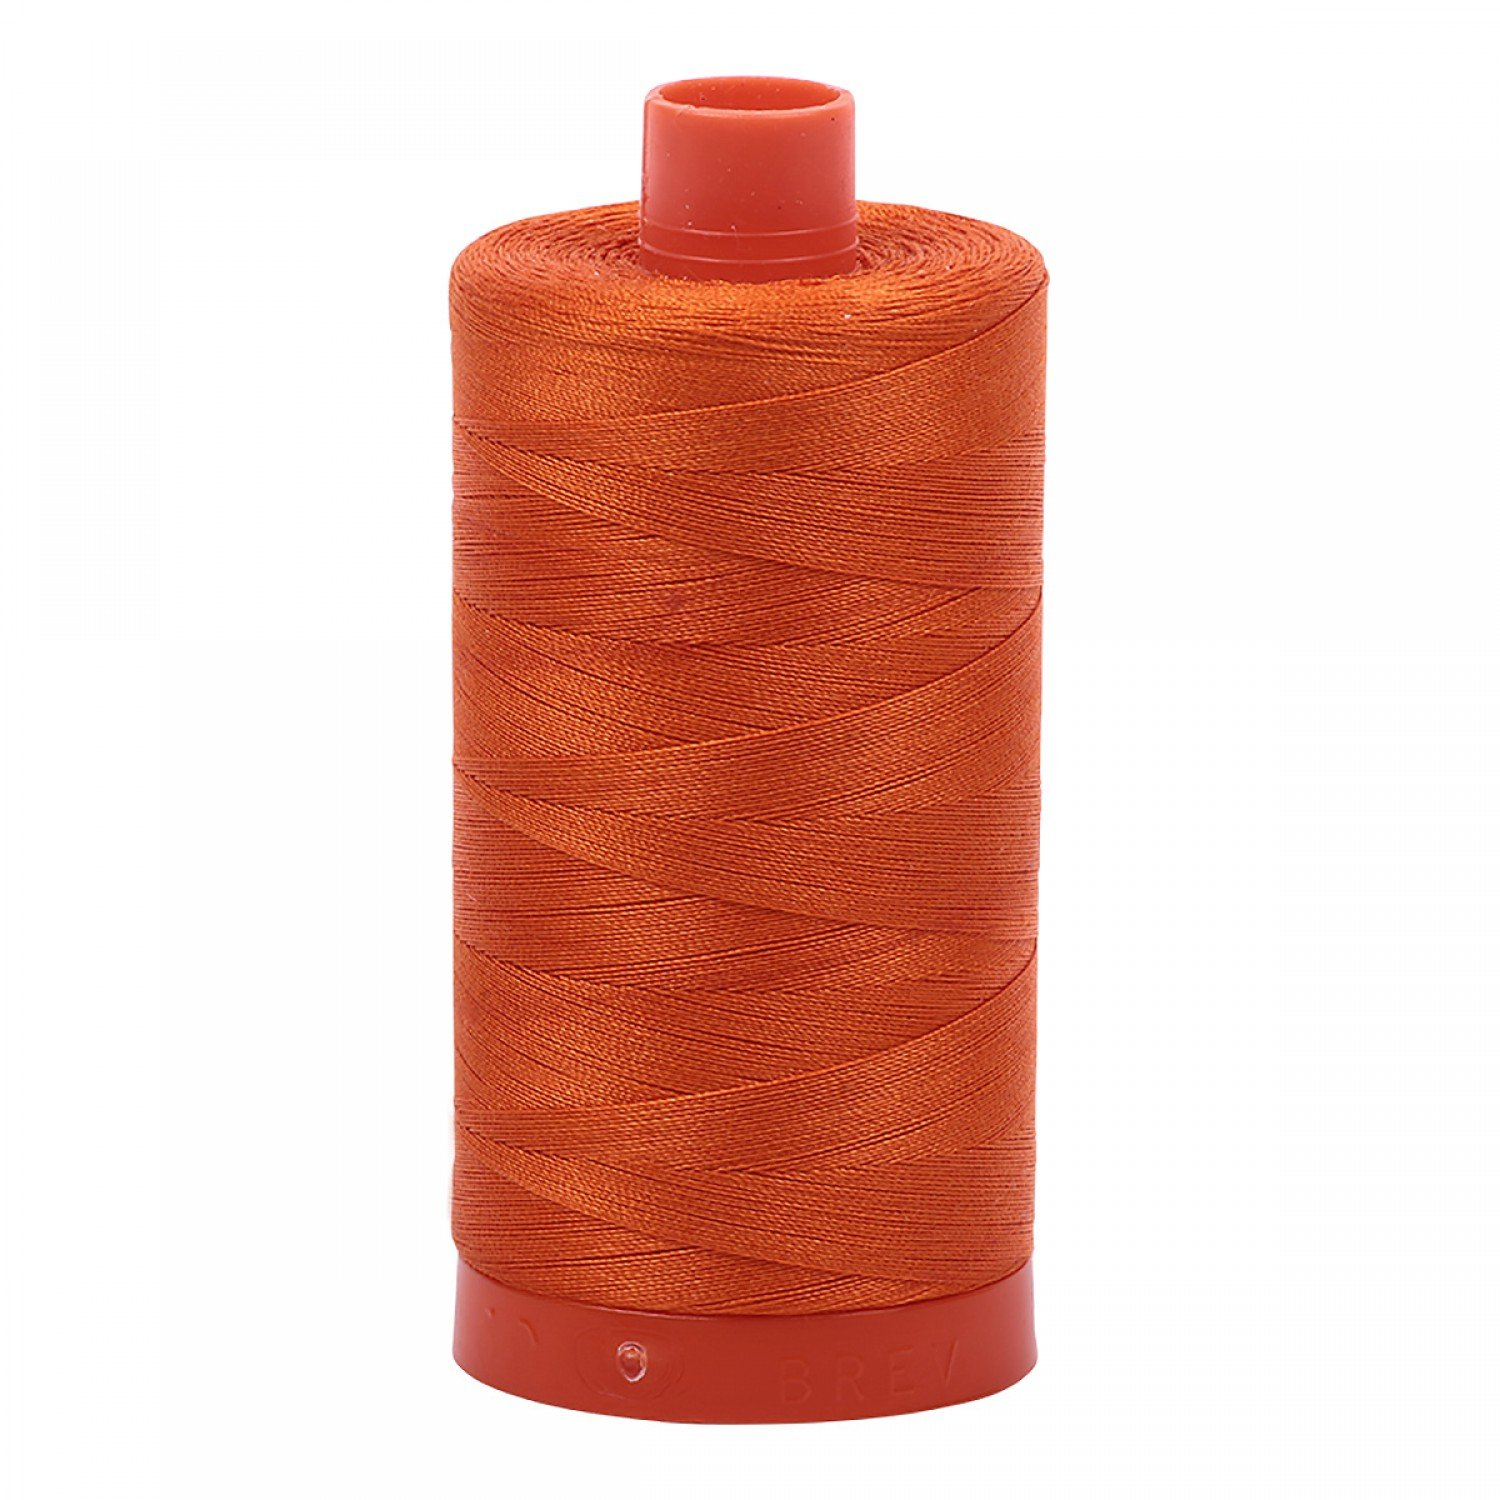 Aurifil Mako Cotton Thread 50 wt 1422 yds 2235 Orange